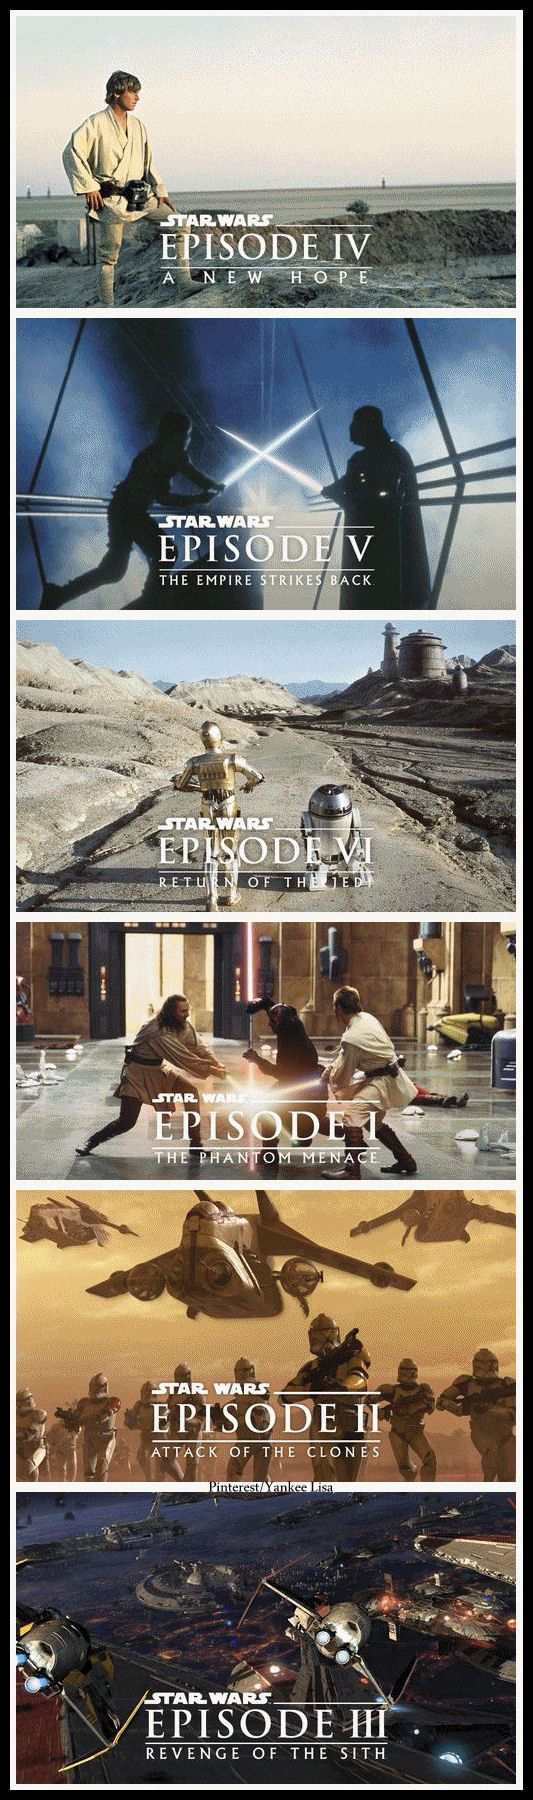 The Star Wars saga...as they first appeared in the theaters, starting back in the mid-70s. To this day I still can't figure out why George Lucas started the series in the middle and not at the beginning. lol